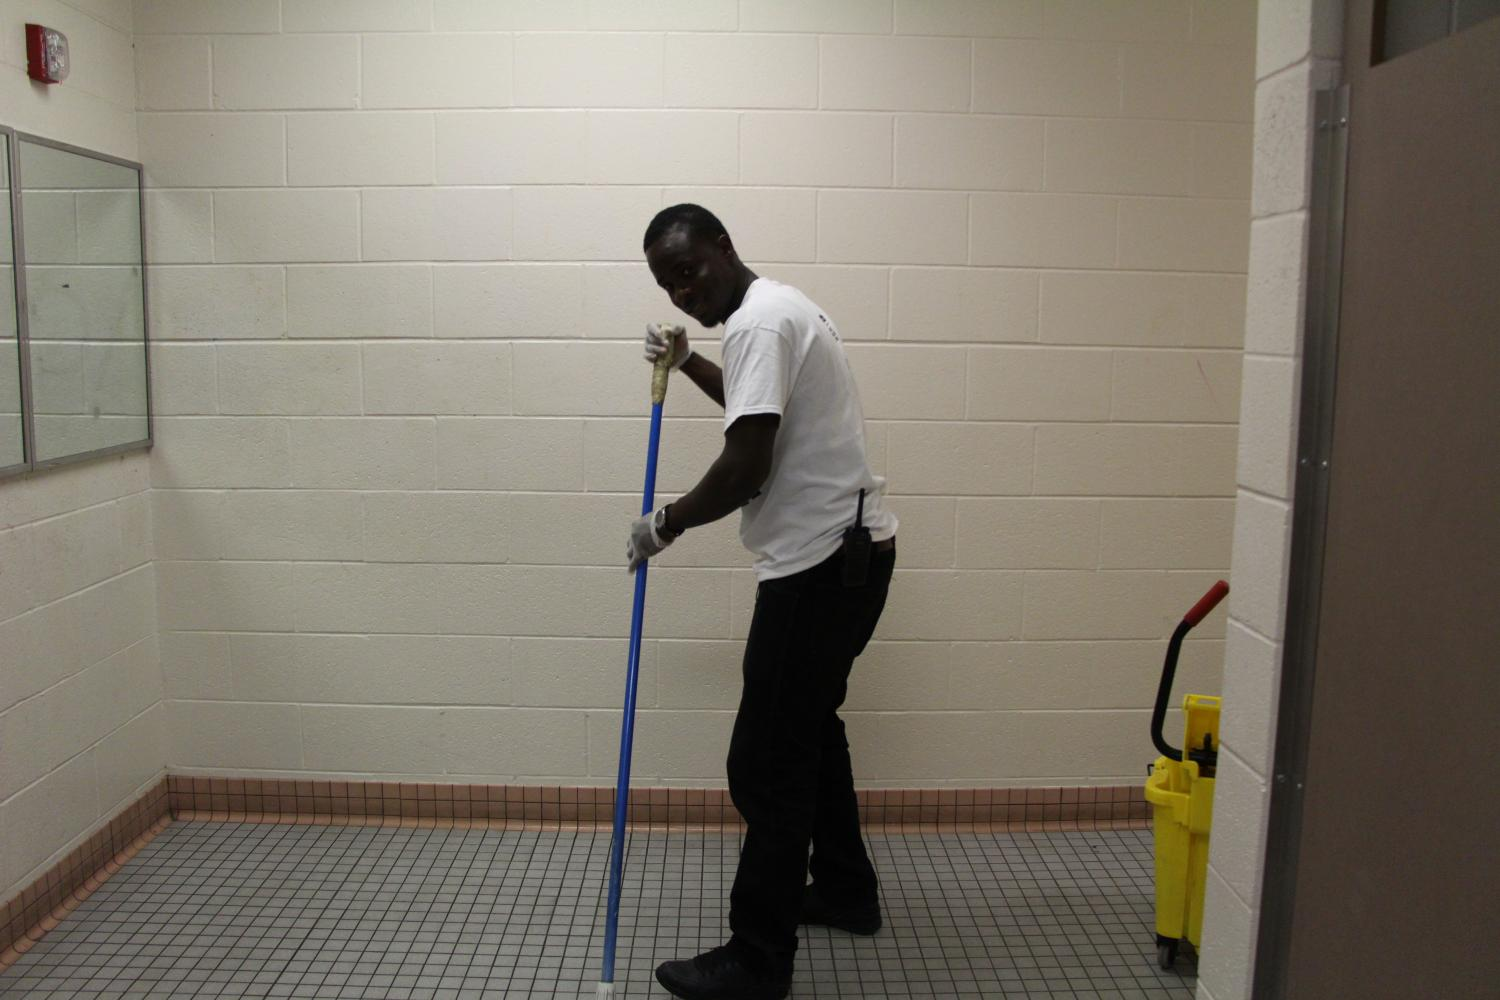 Pictured above Amuchin Dann is cleaning the third floor women's bathroom about an hour and a half after school. He is a night shift custodian who has worked at South for a few months. He has been treated well by students and staff and enjoys it here. Photo: Oliver Hall